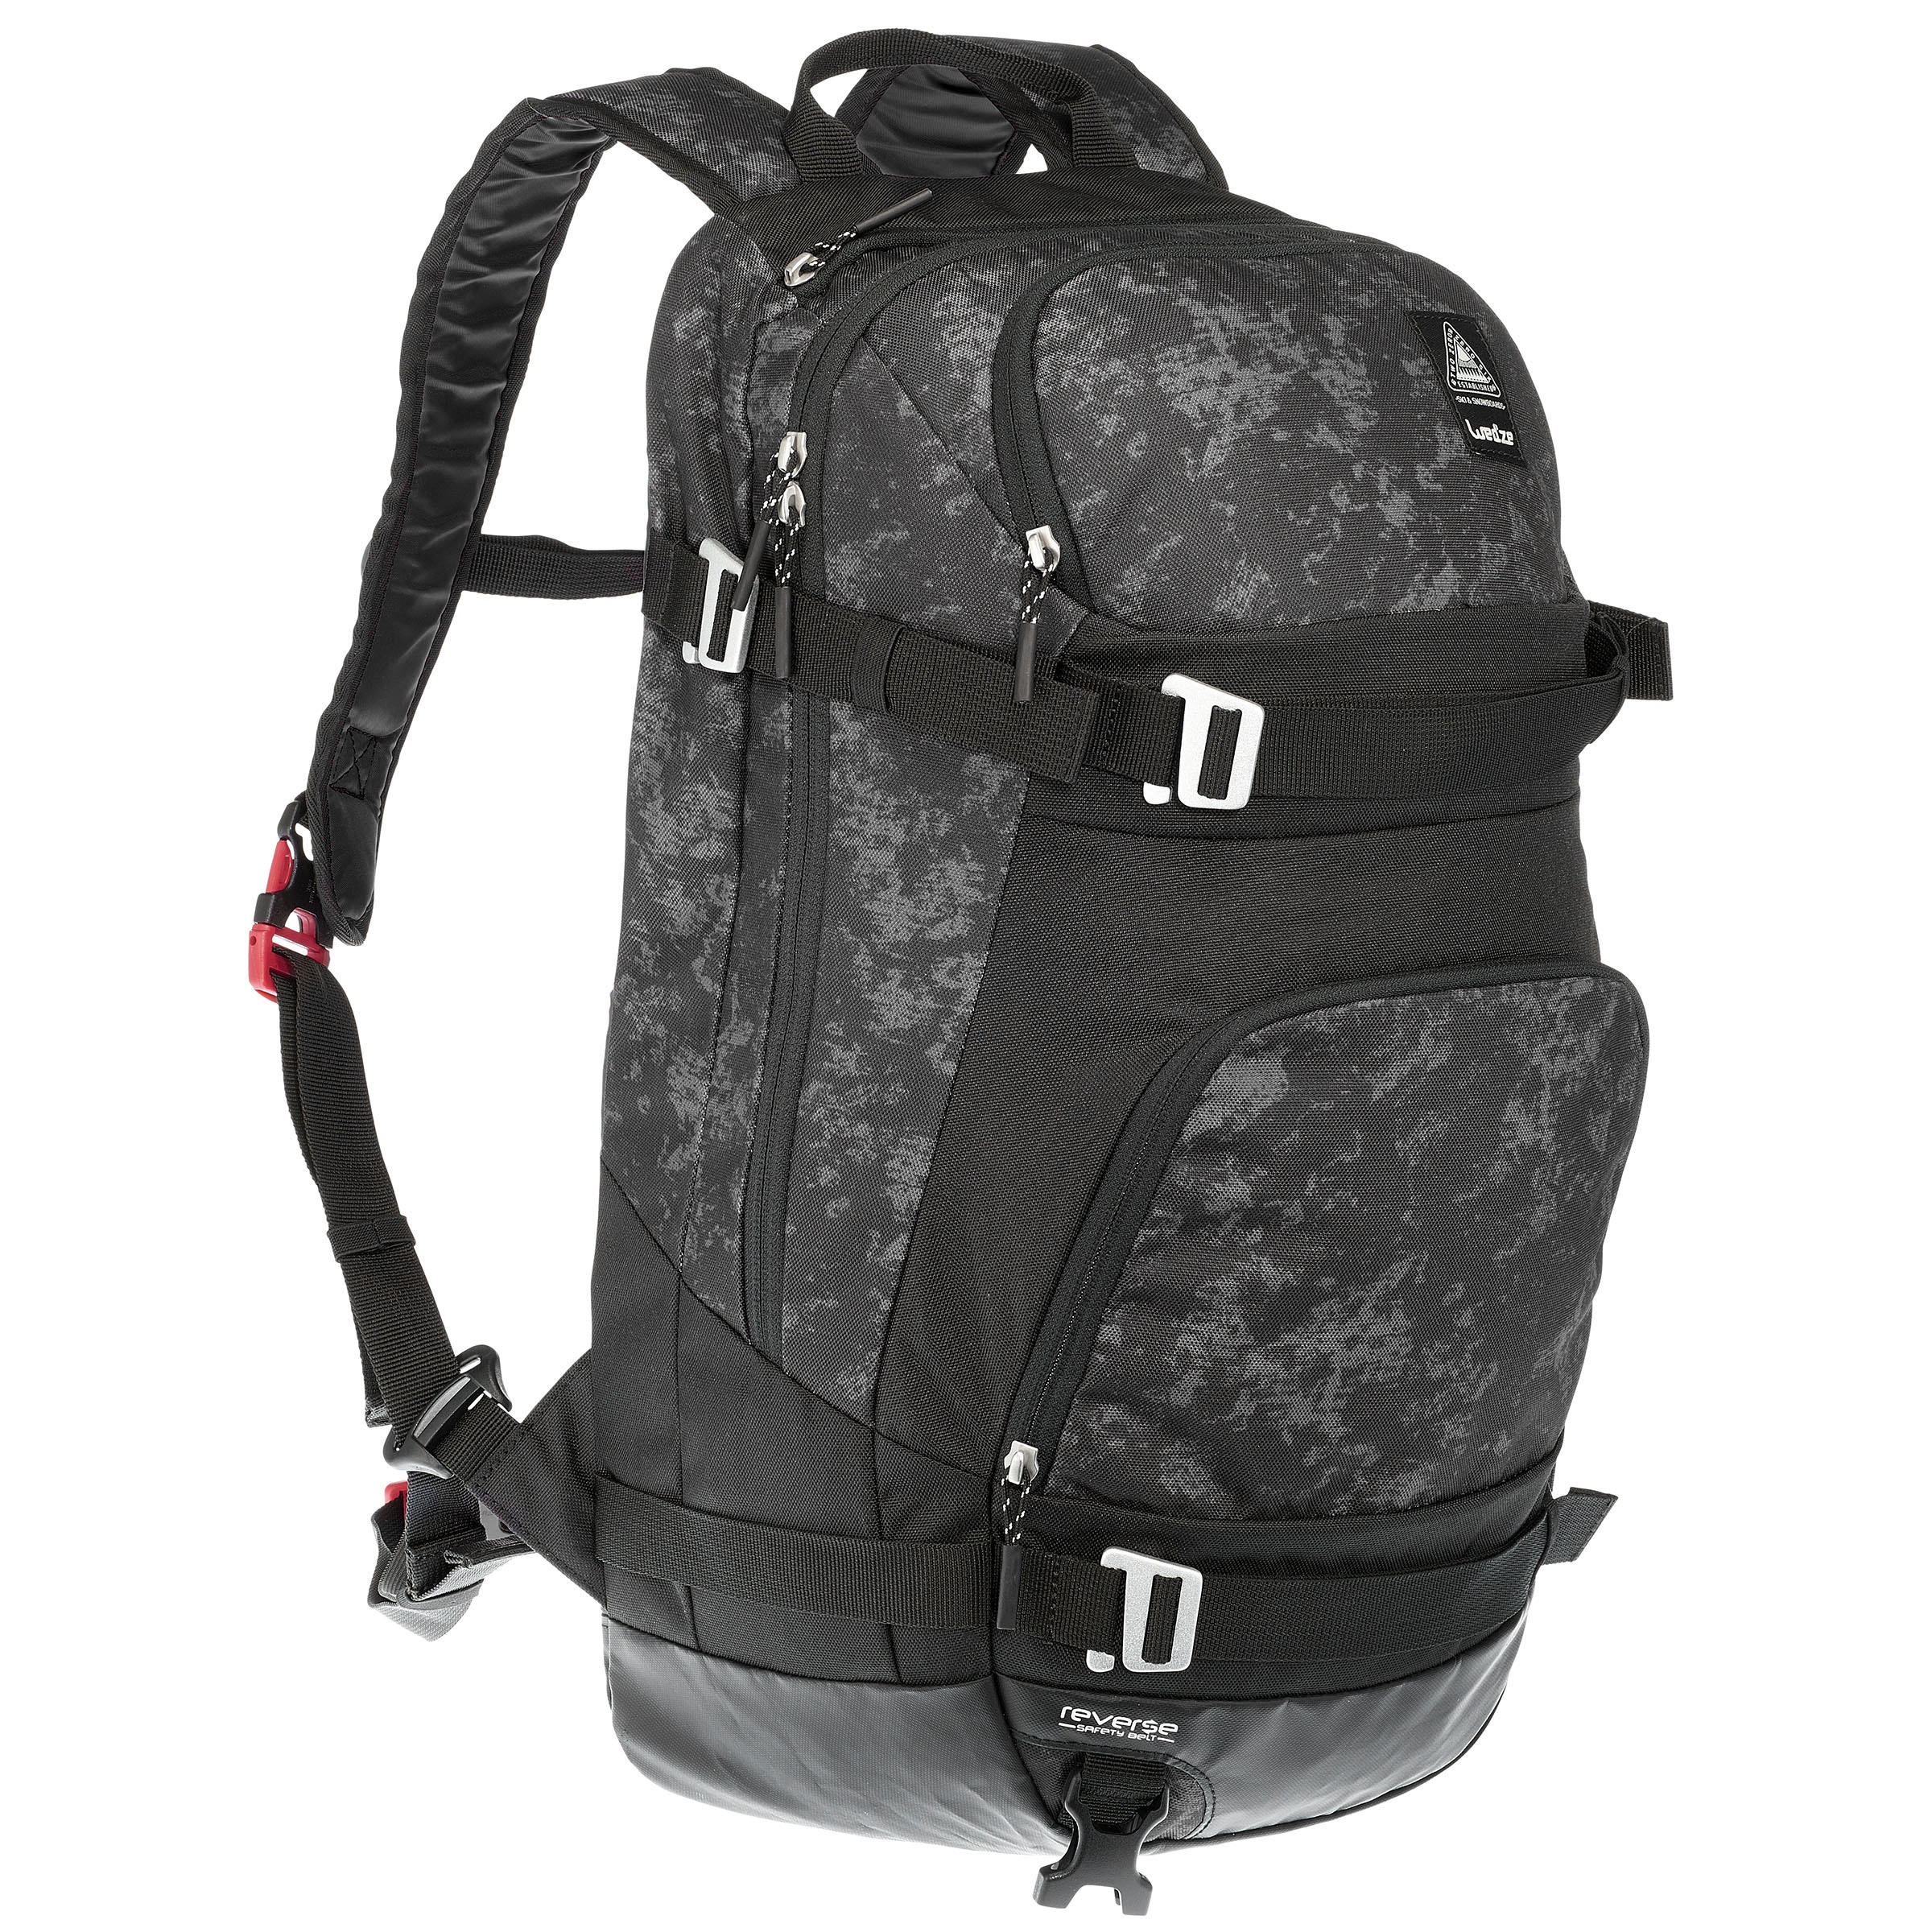 FS500 Reverse Skiing Backpack - Black